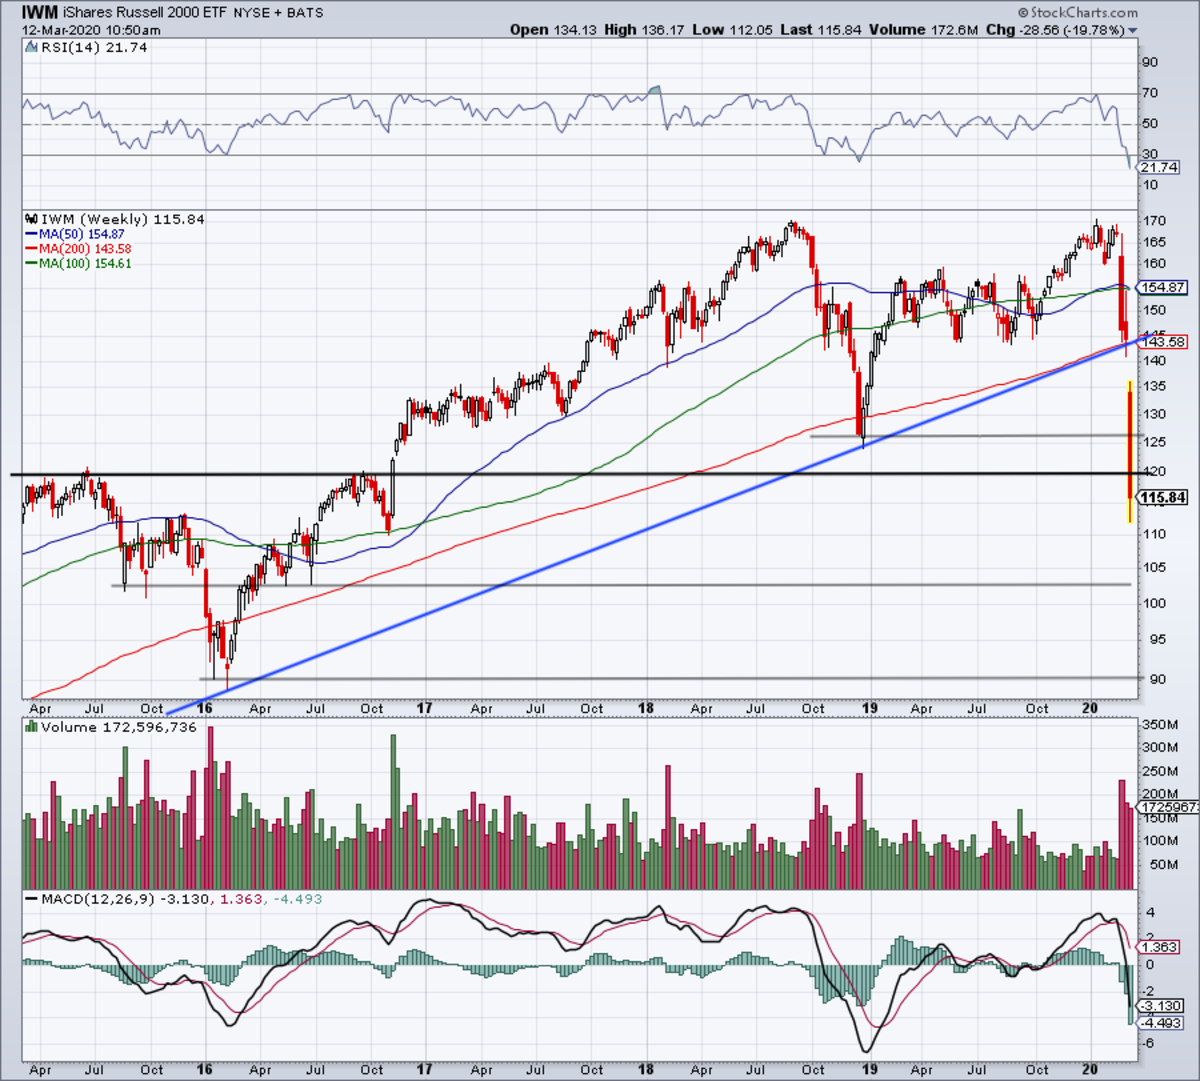 Weekly chart of the IWM.